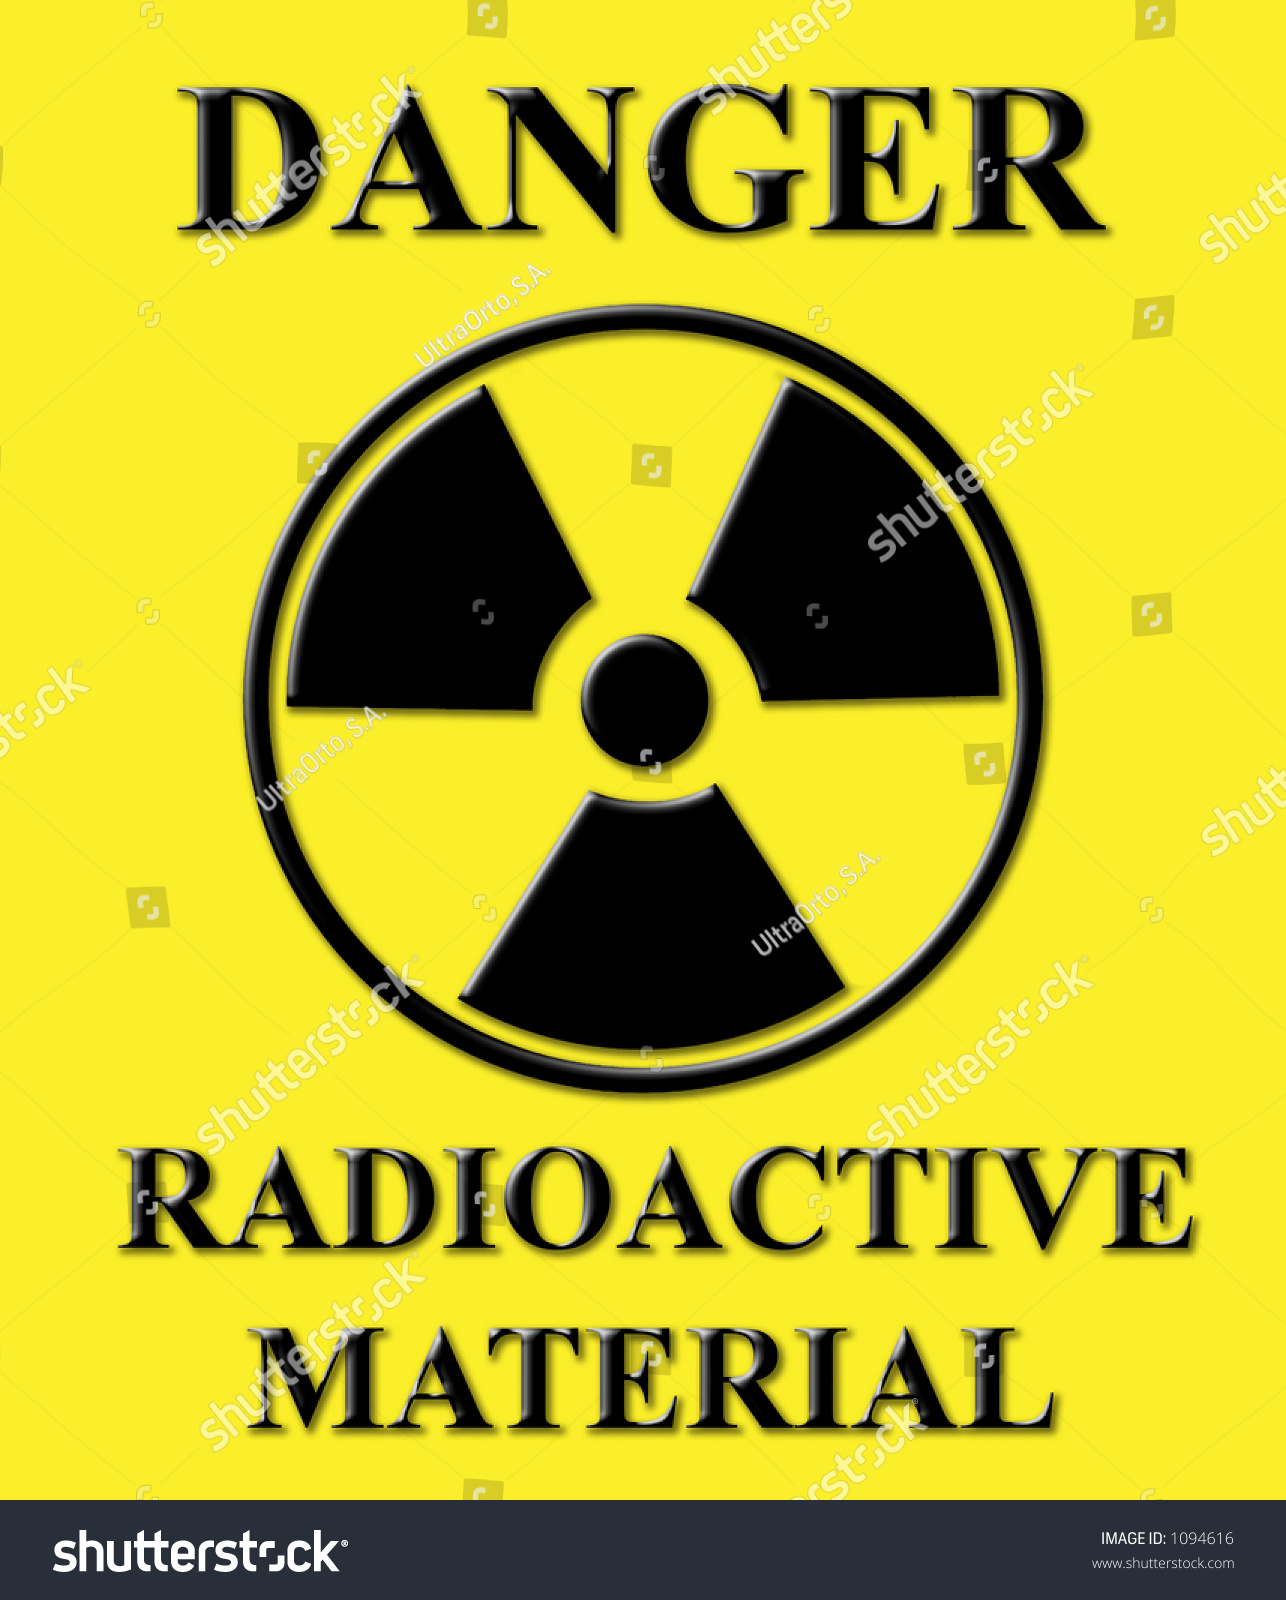 an analysis of the radioactive wastes Backgrounder on updating disposal rules for low-level waste printable version the nuclear regulatory commission is amending its rules for the disposal of some low-level radioactive wastes.